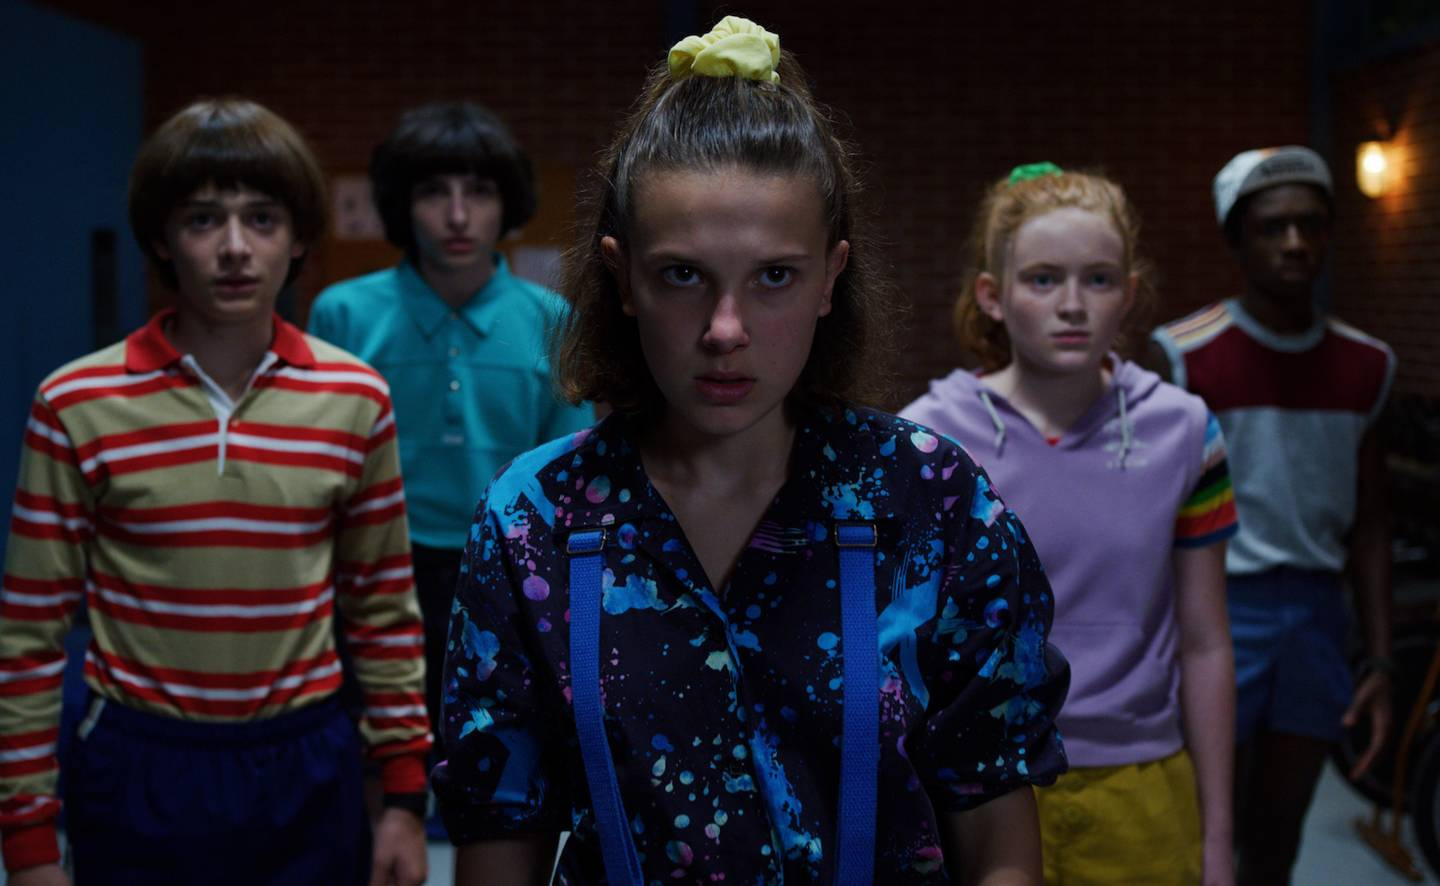 6 'Stranger Things' in talent management systems | peopleHum